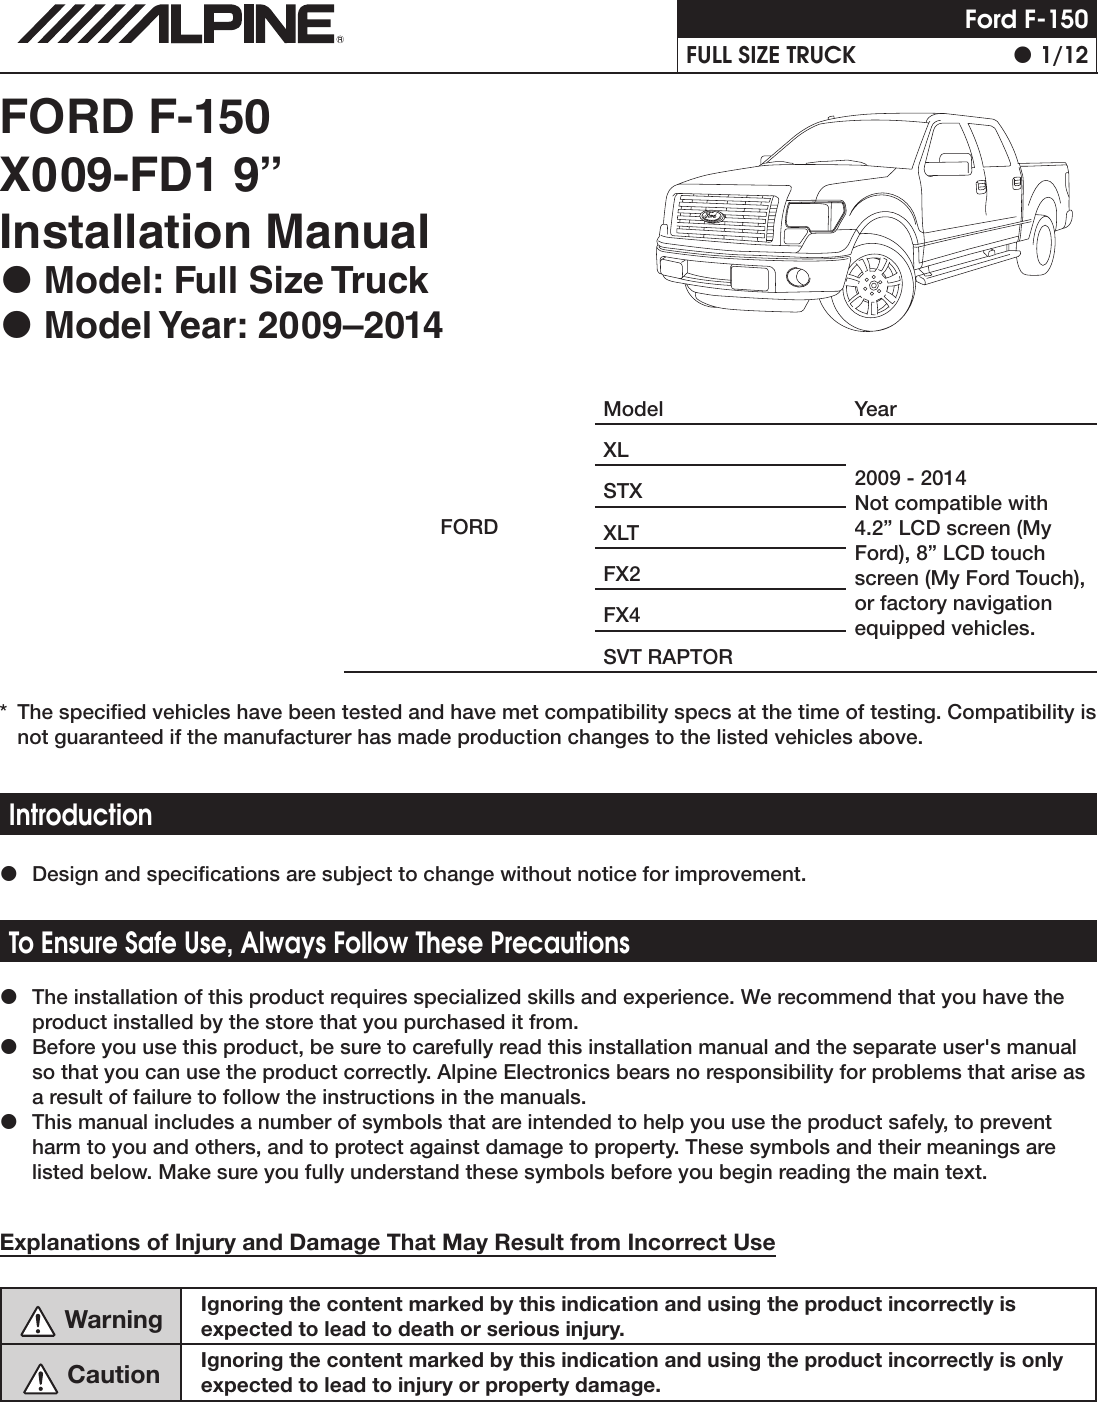 Alpine X009 Fd1 Installation Manual Camera Wiring Diagram Page 1 Of 12